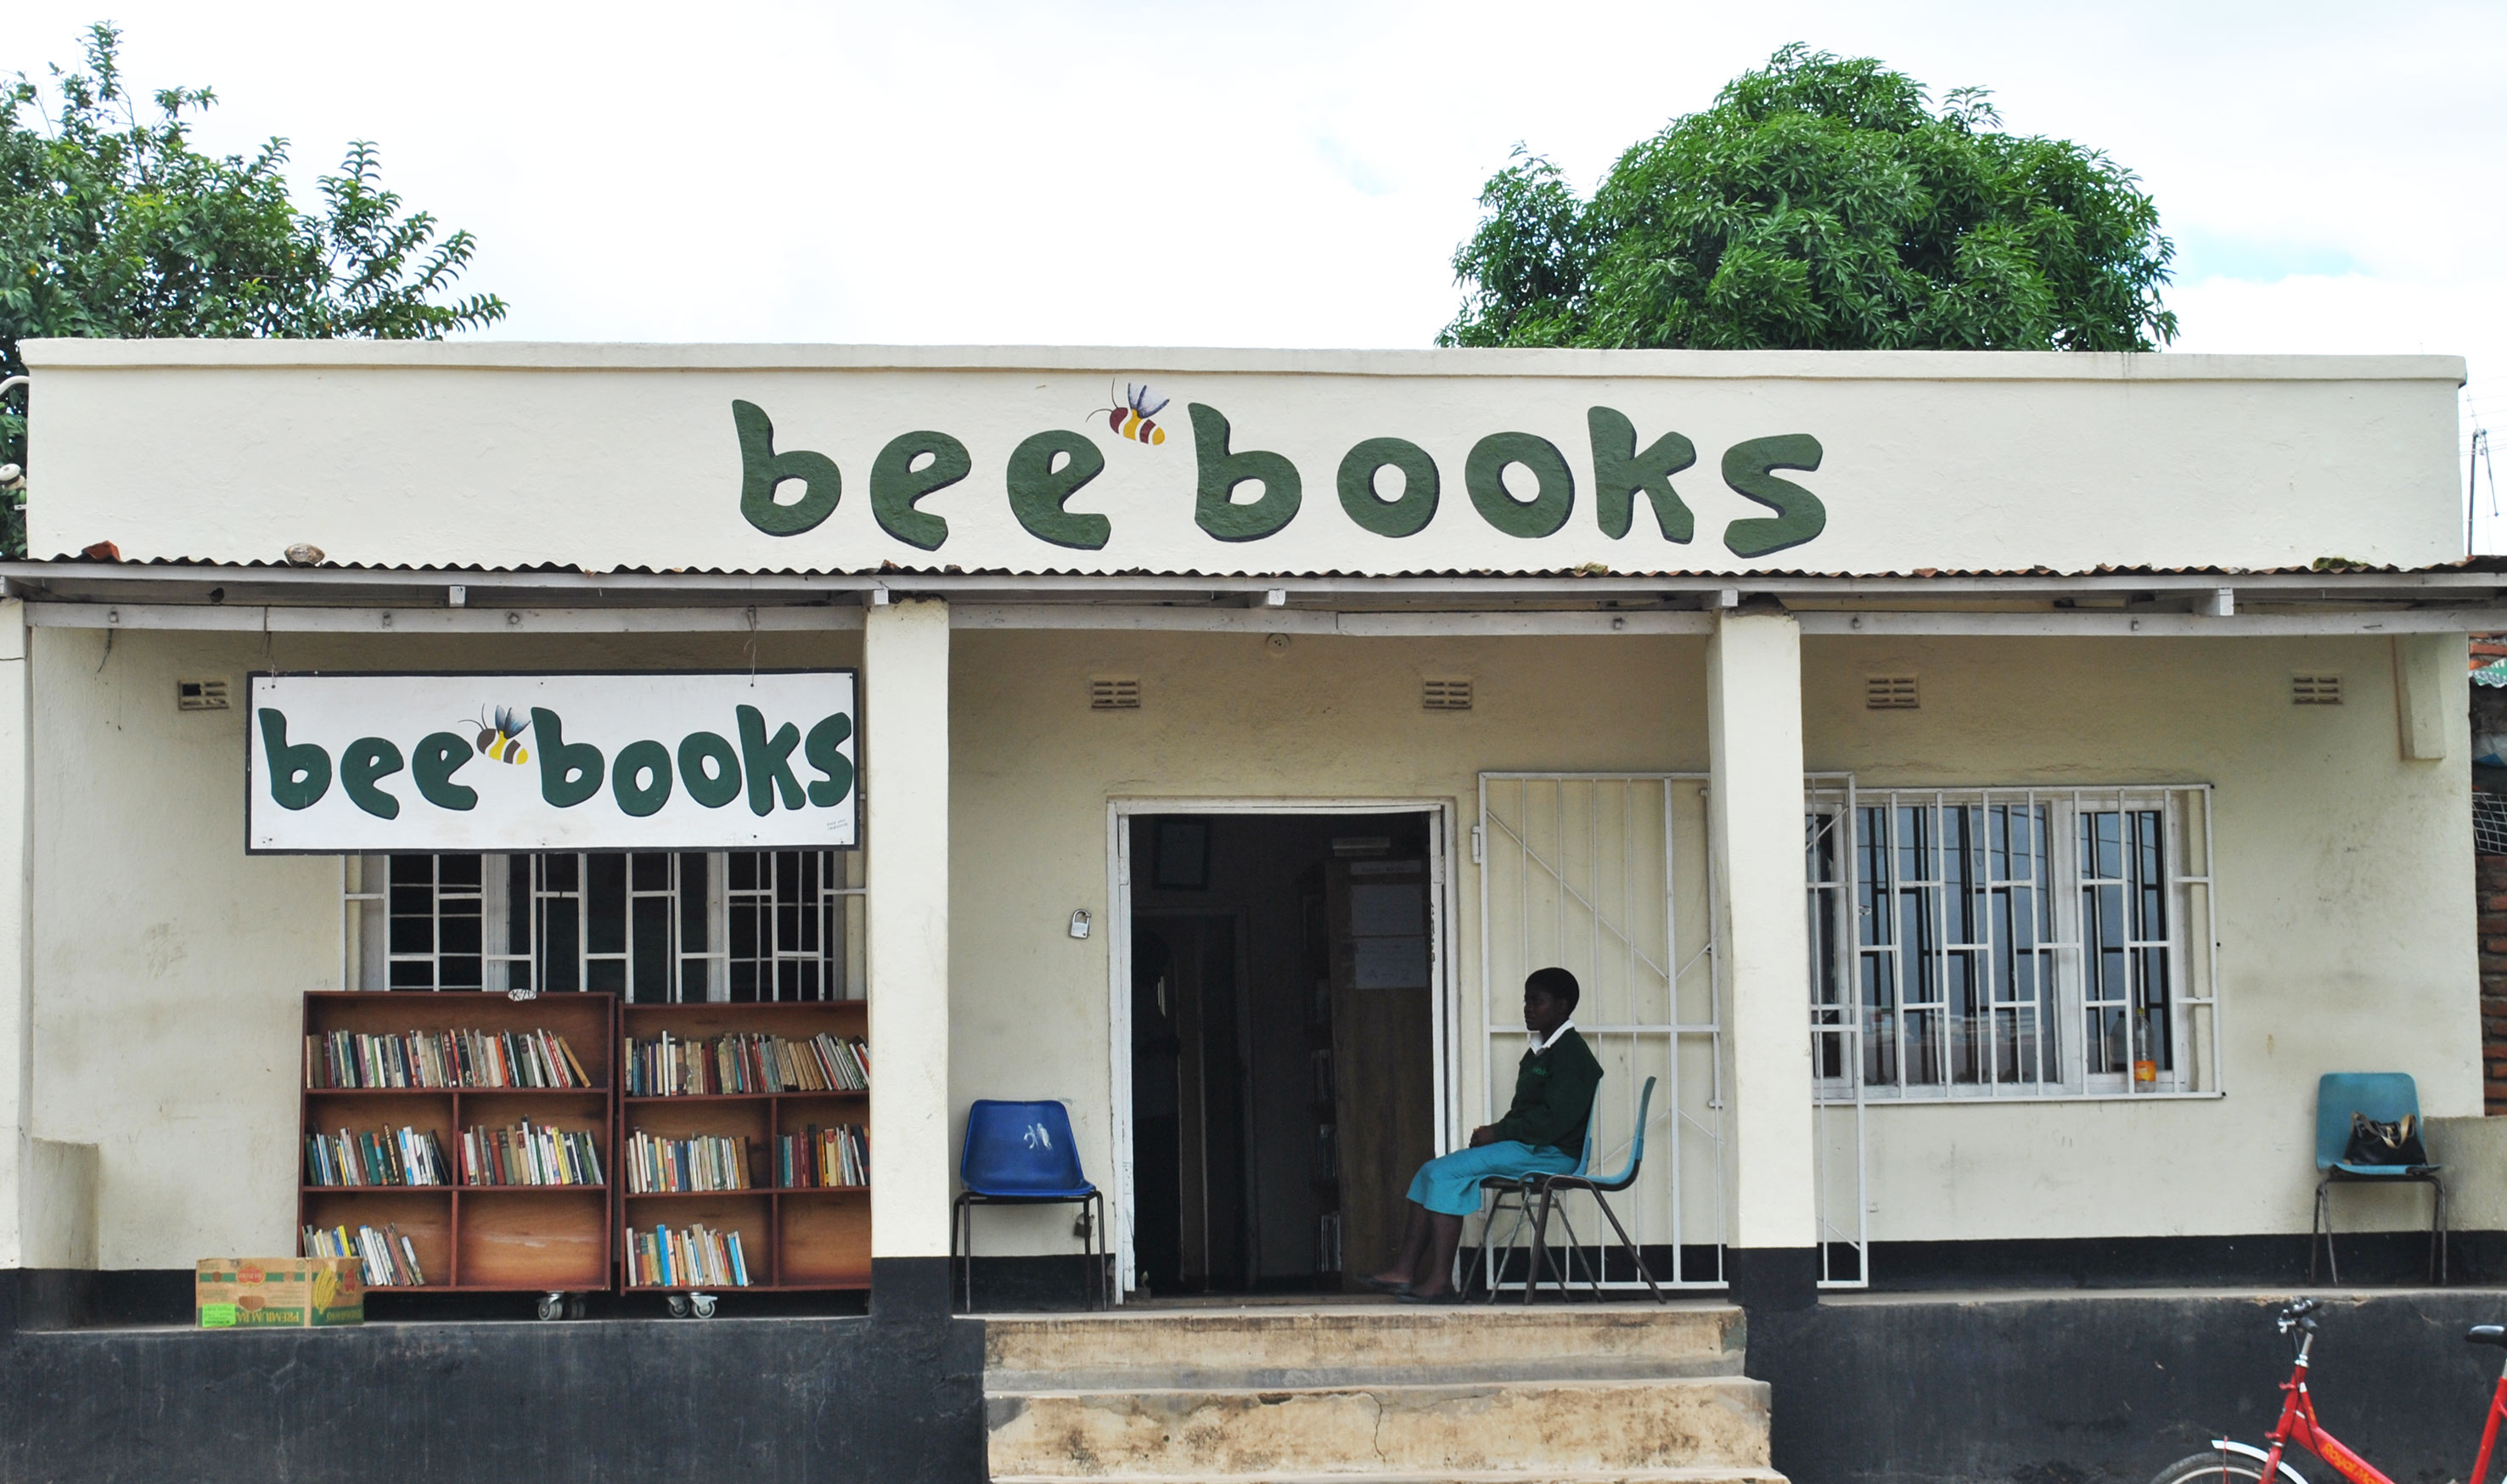 2013 Beebooks, full of books donated from the UK